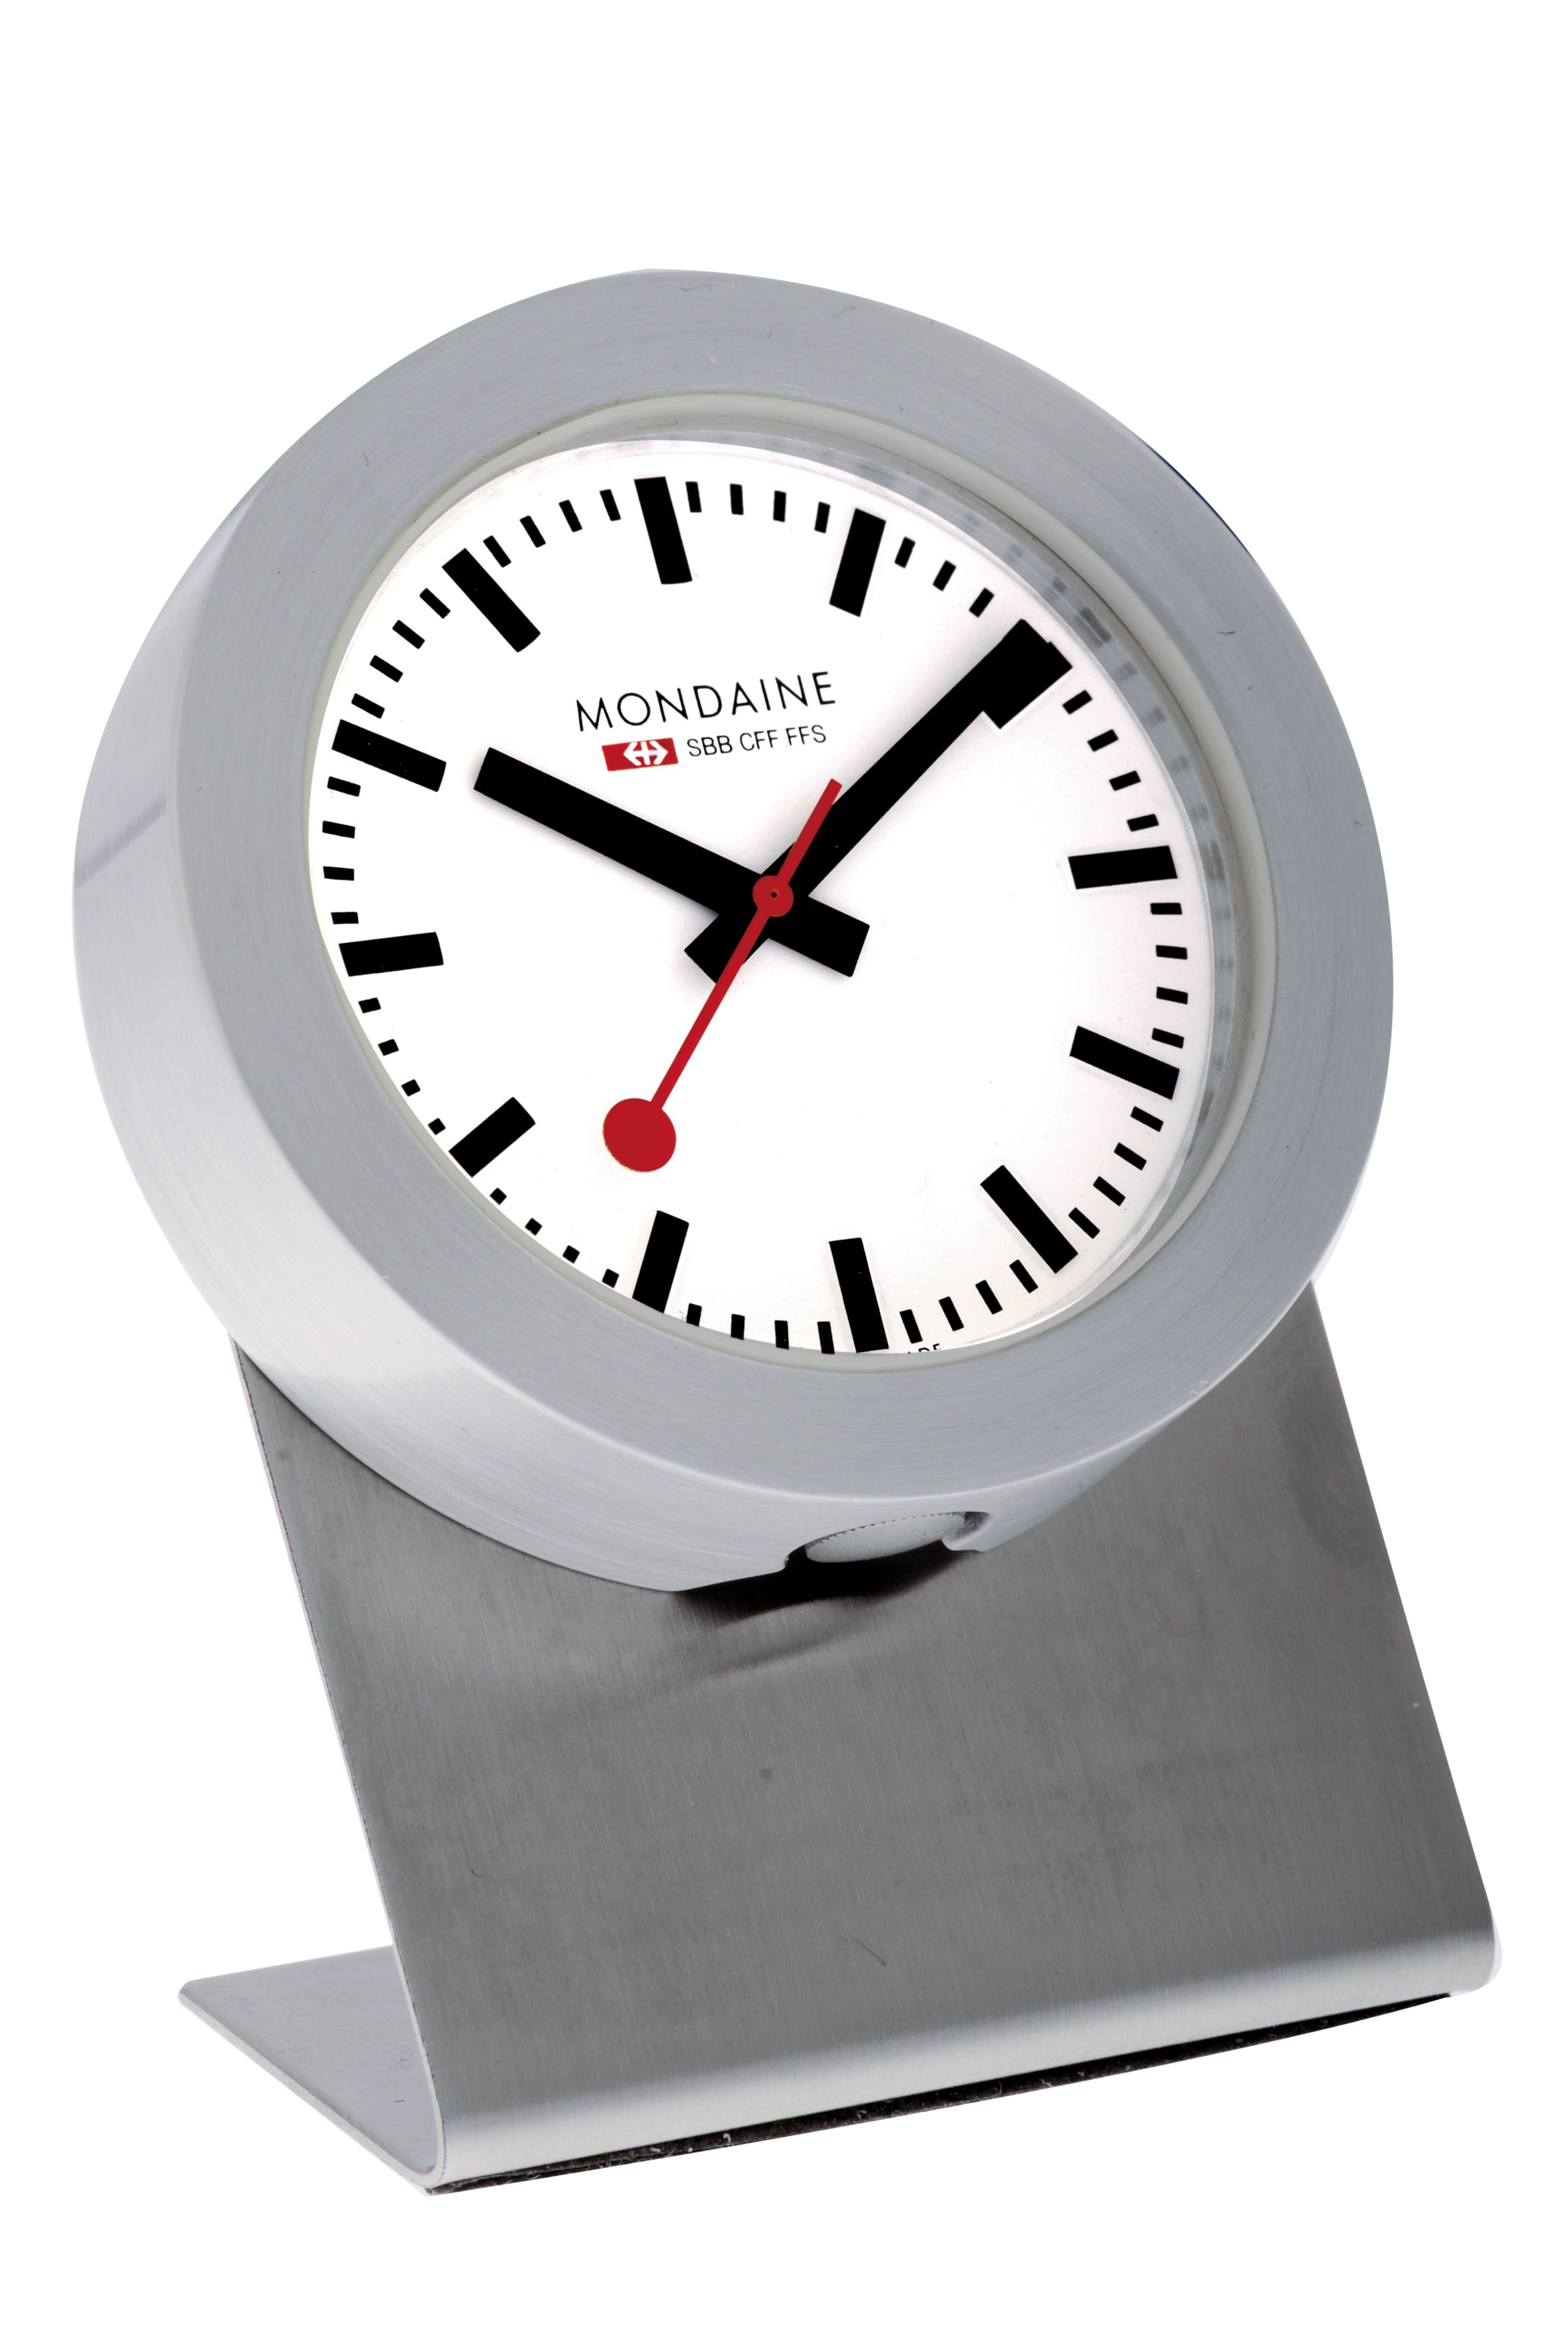 Mondaine swiss watch MAGNET CLOCK - A660.30318.81SBB